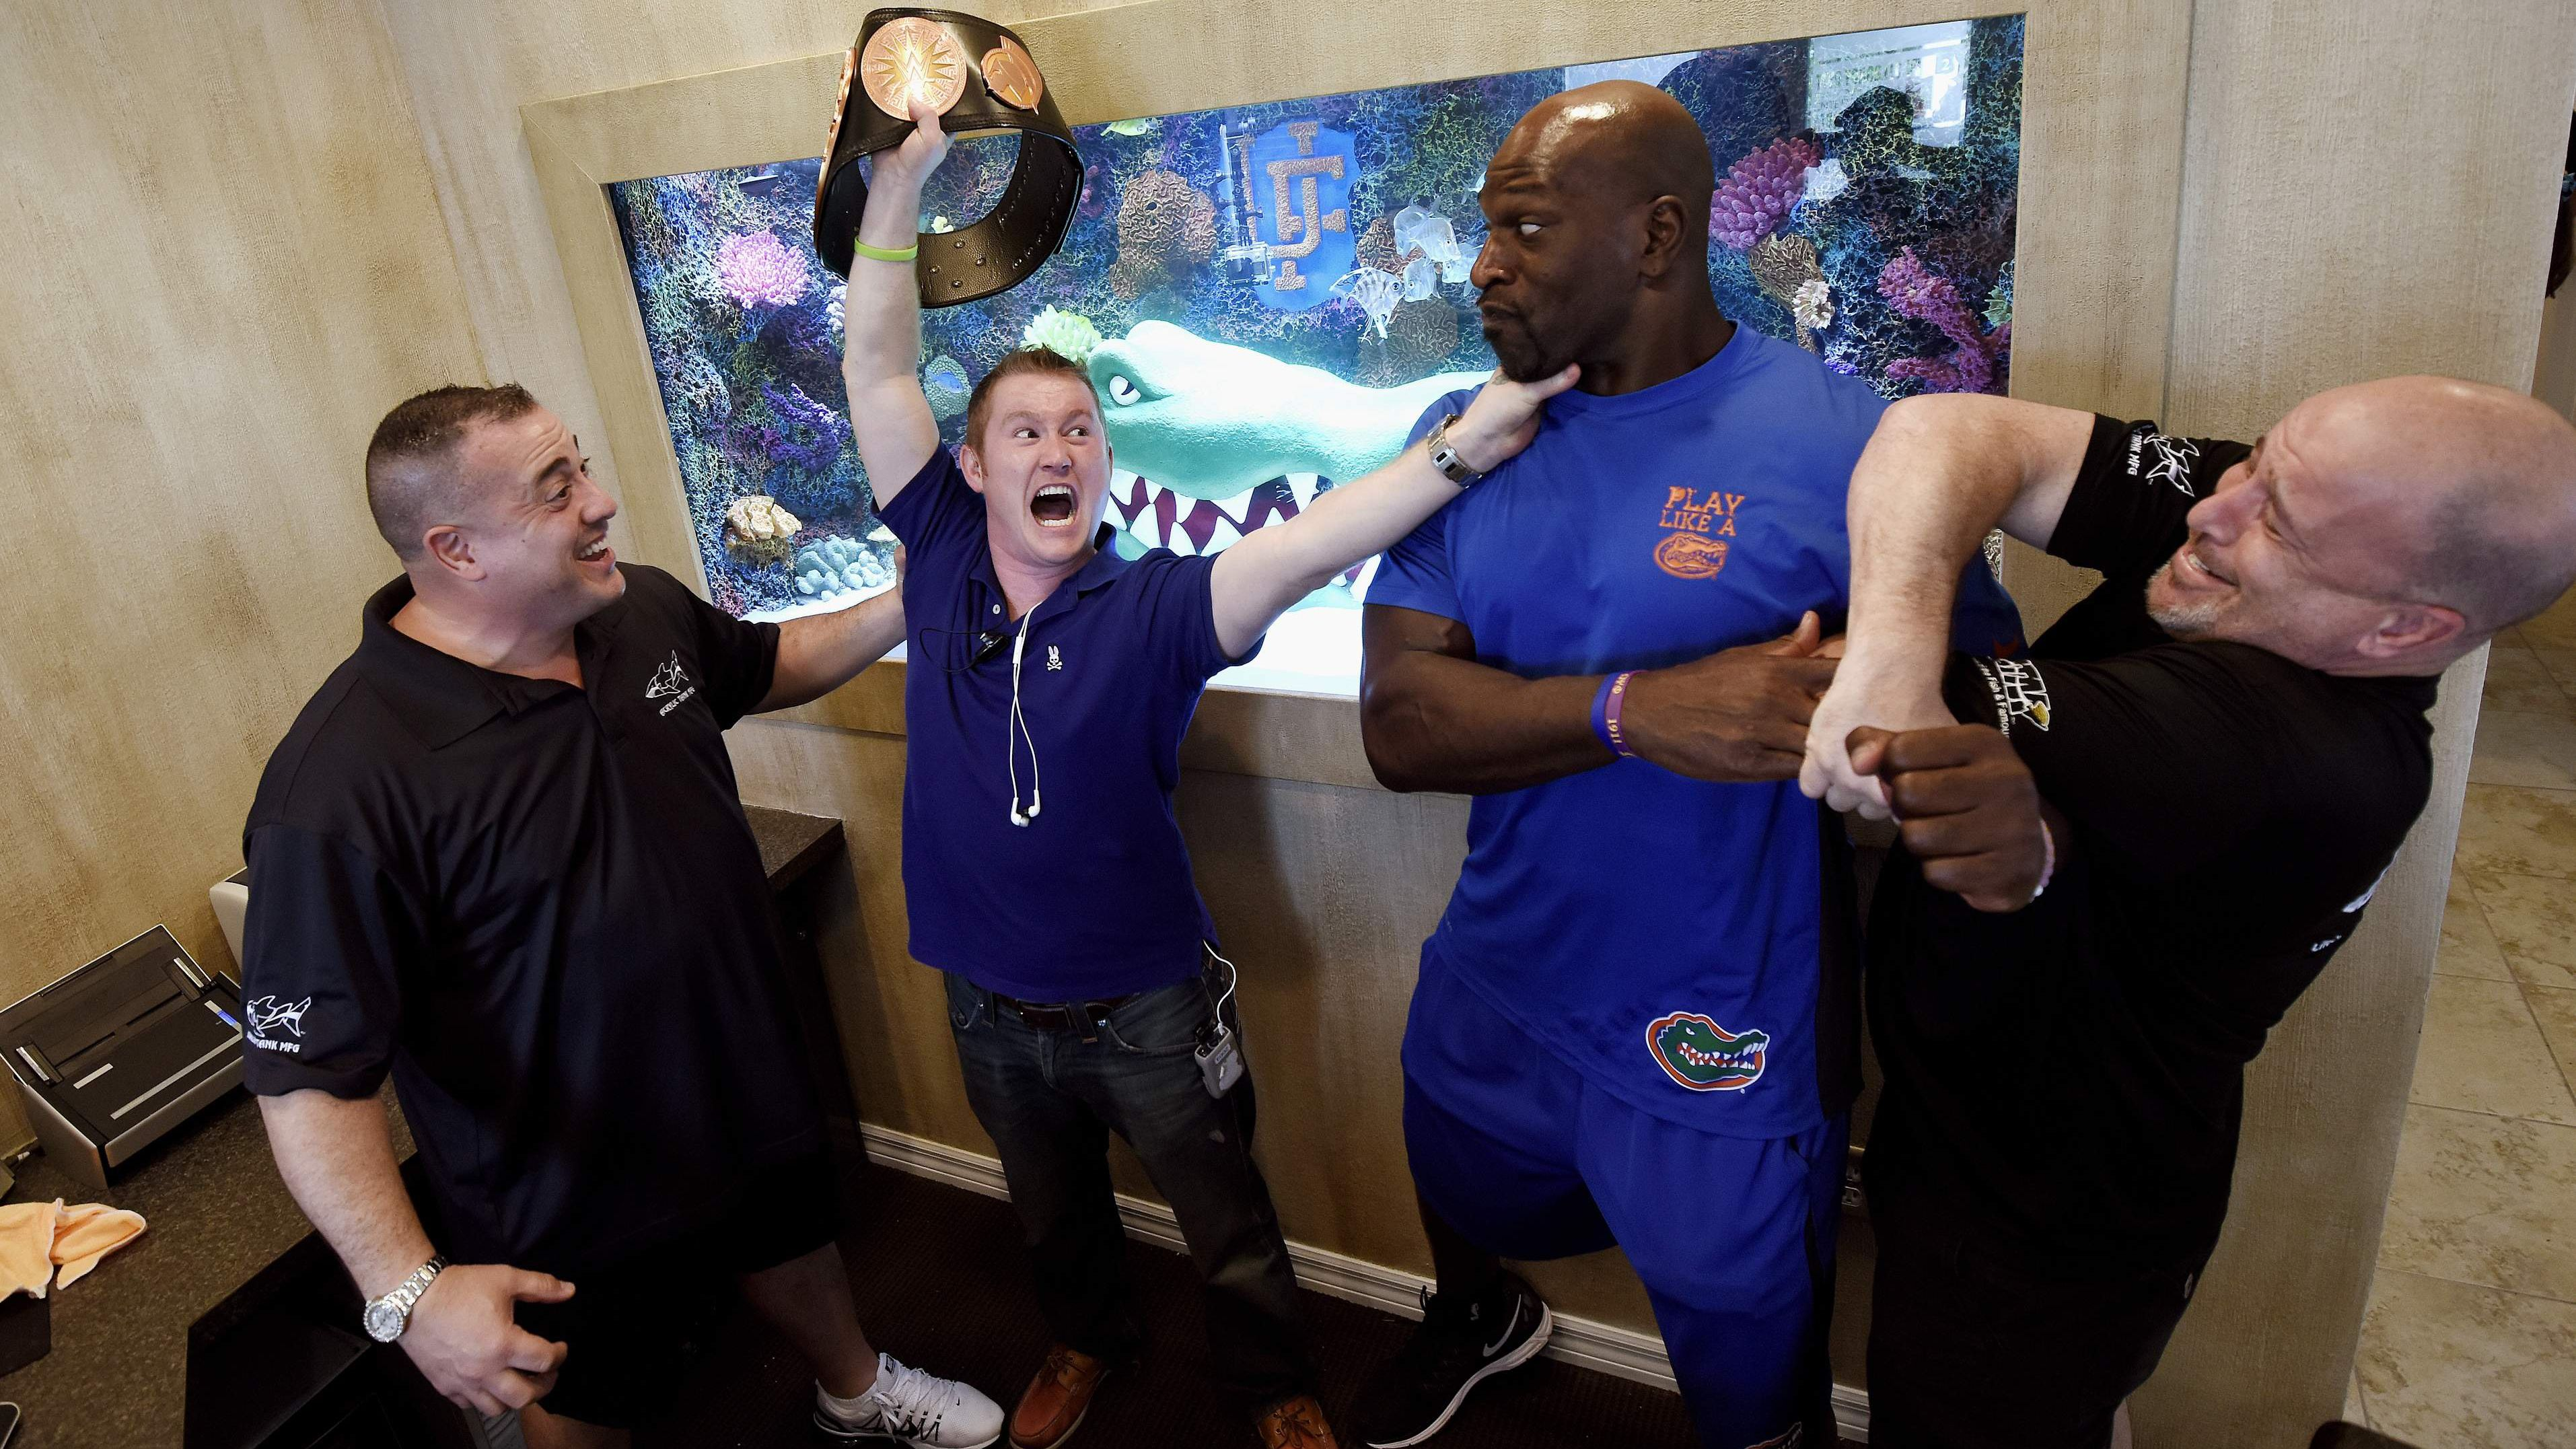 Cast of Tanked pose with NFL player